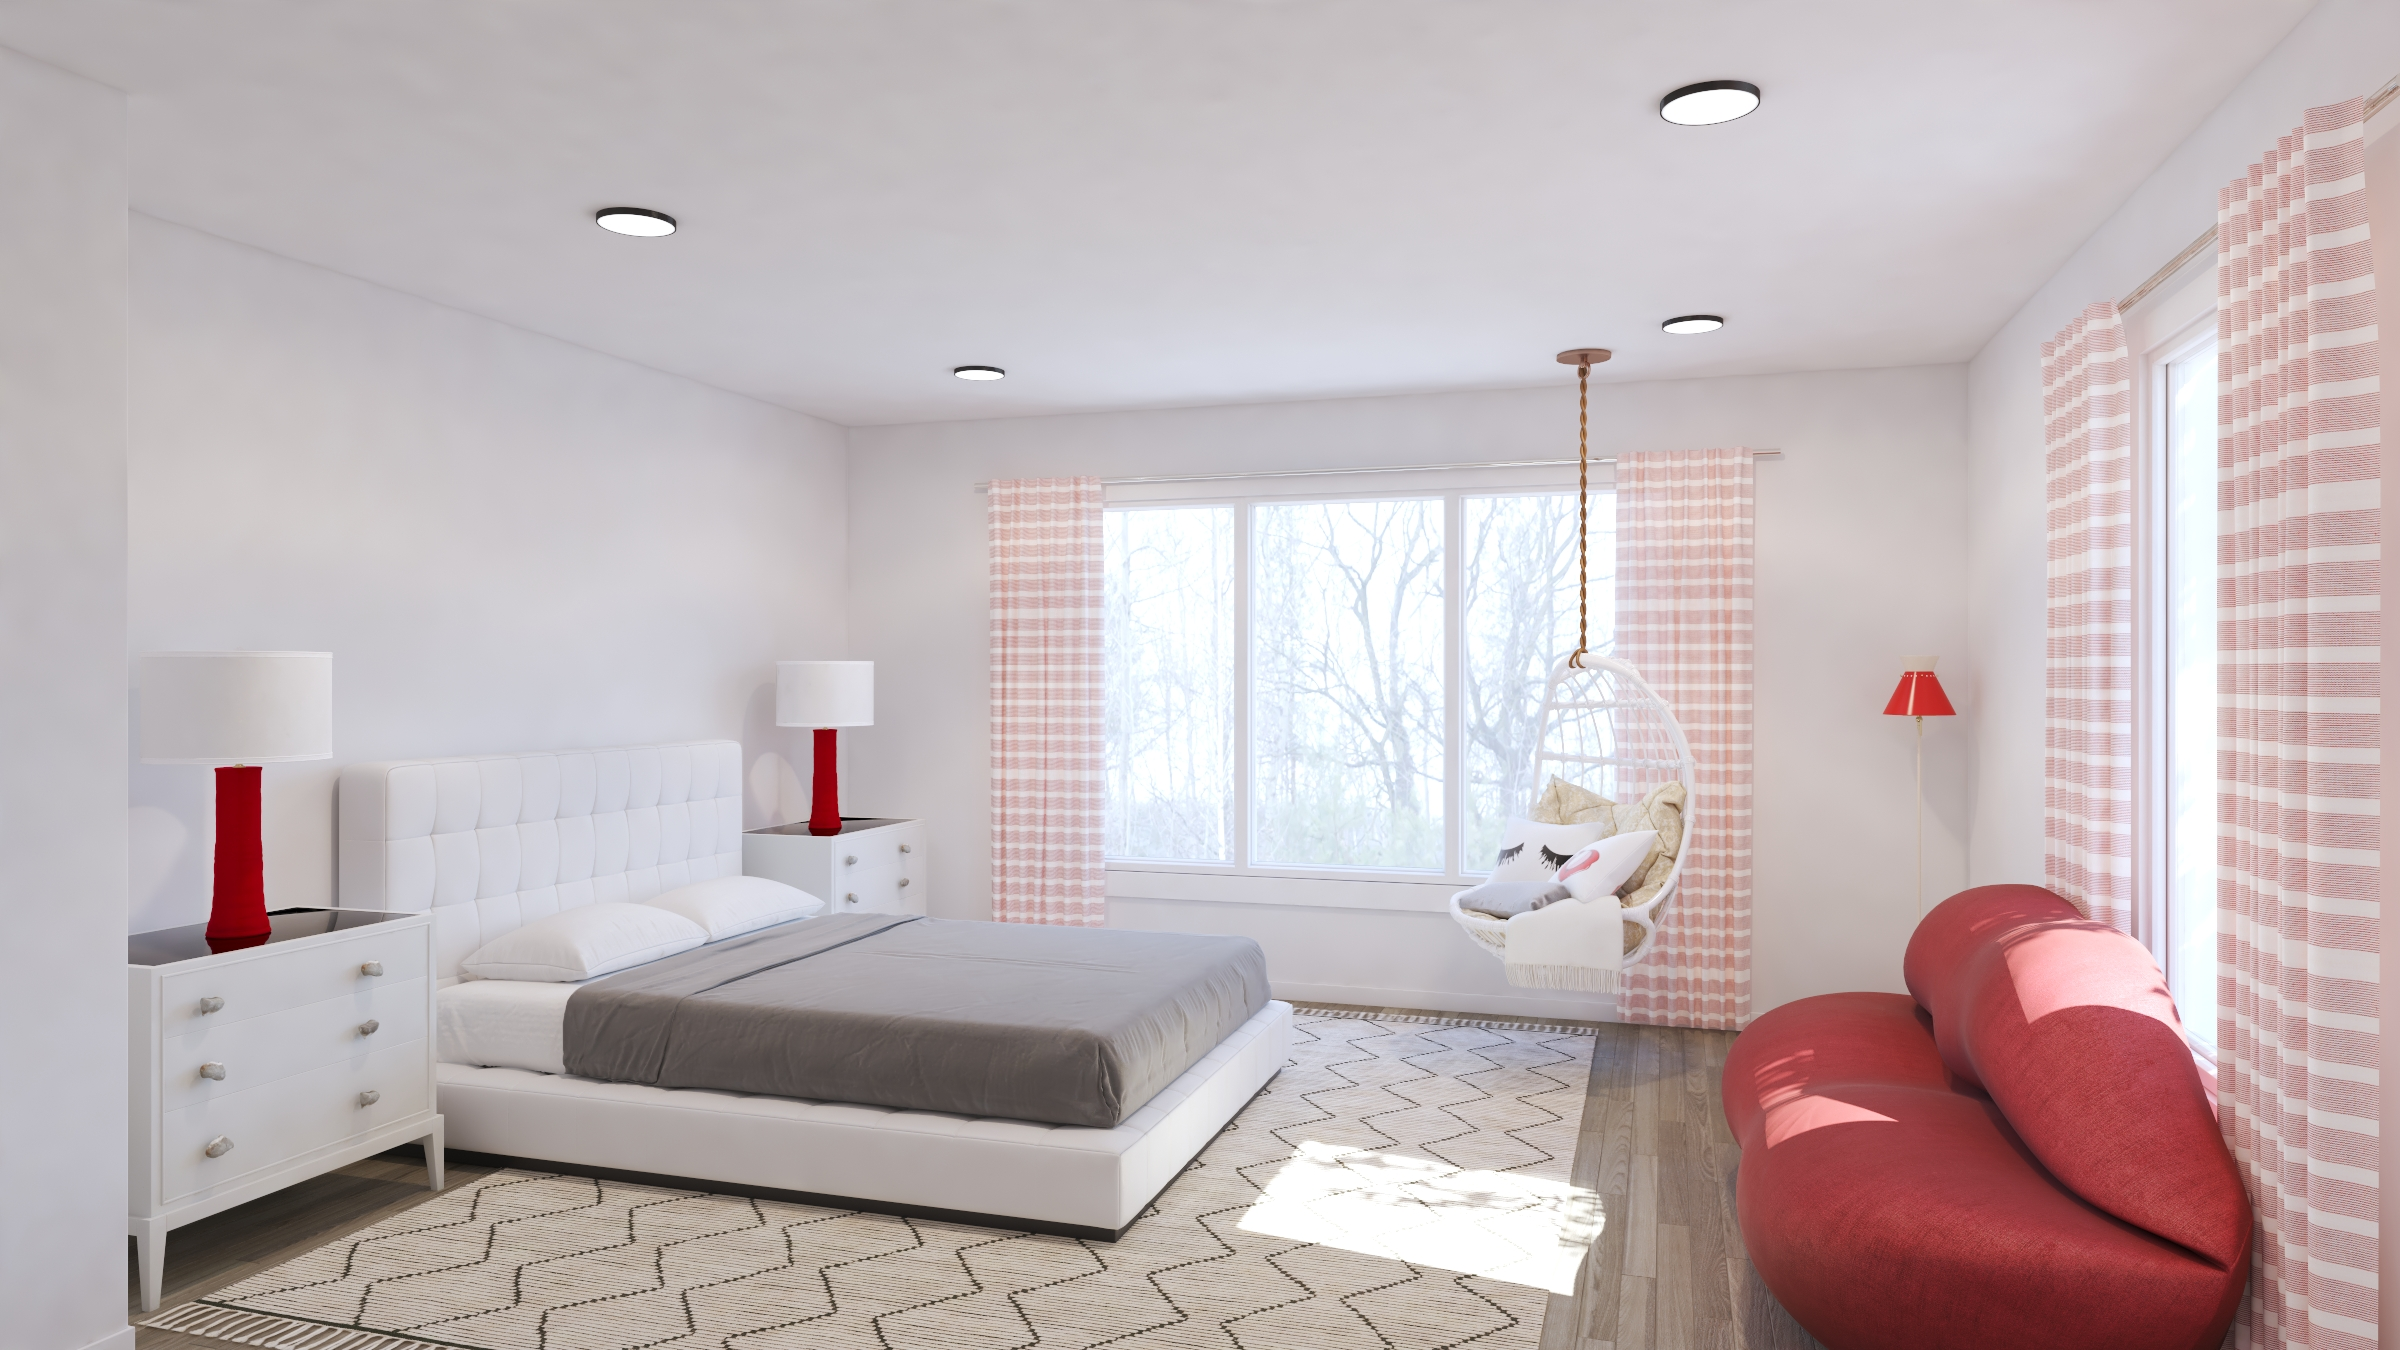 Rubin_Residence_Kylies_Bedroom_option09_01-1.jpg